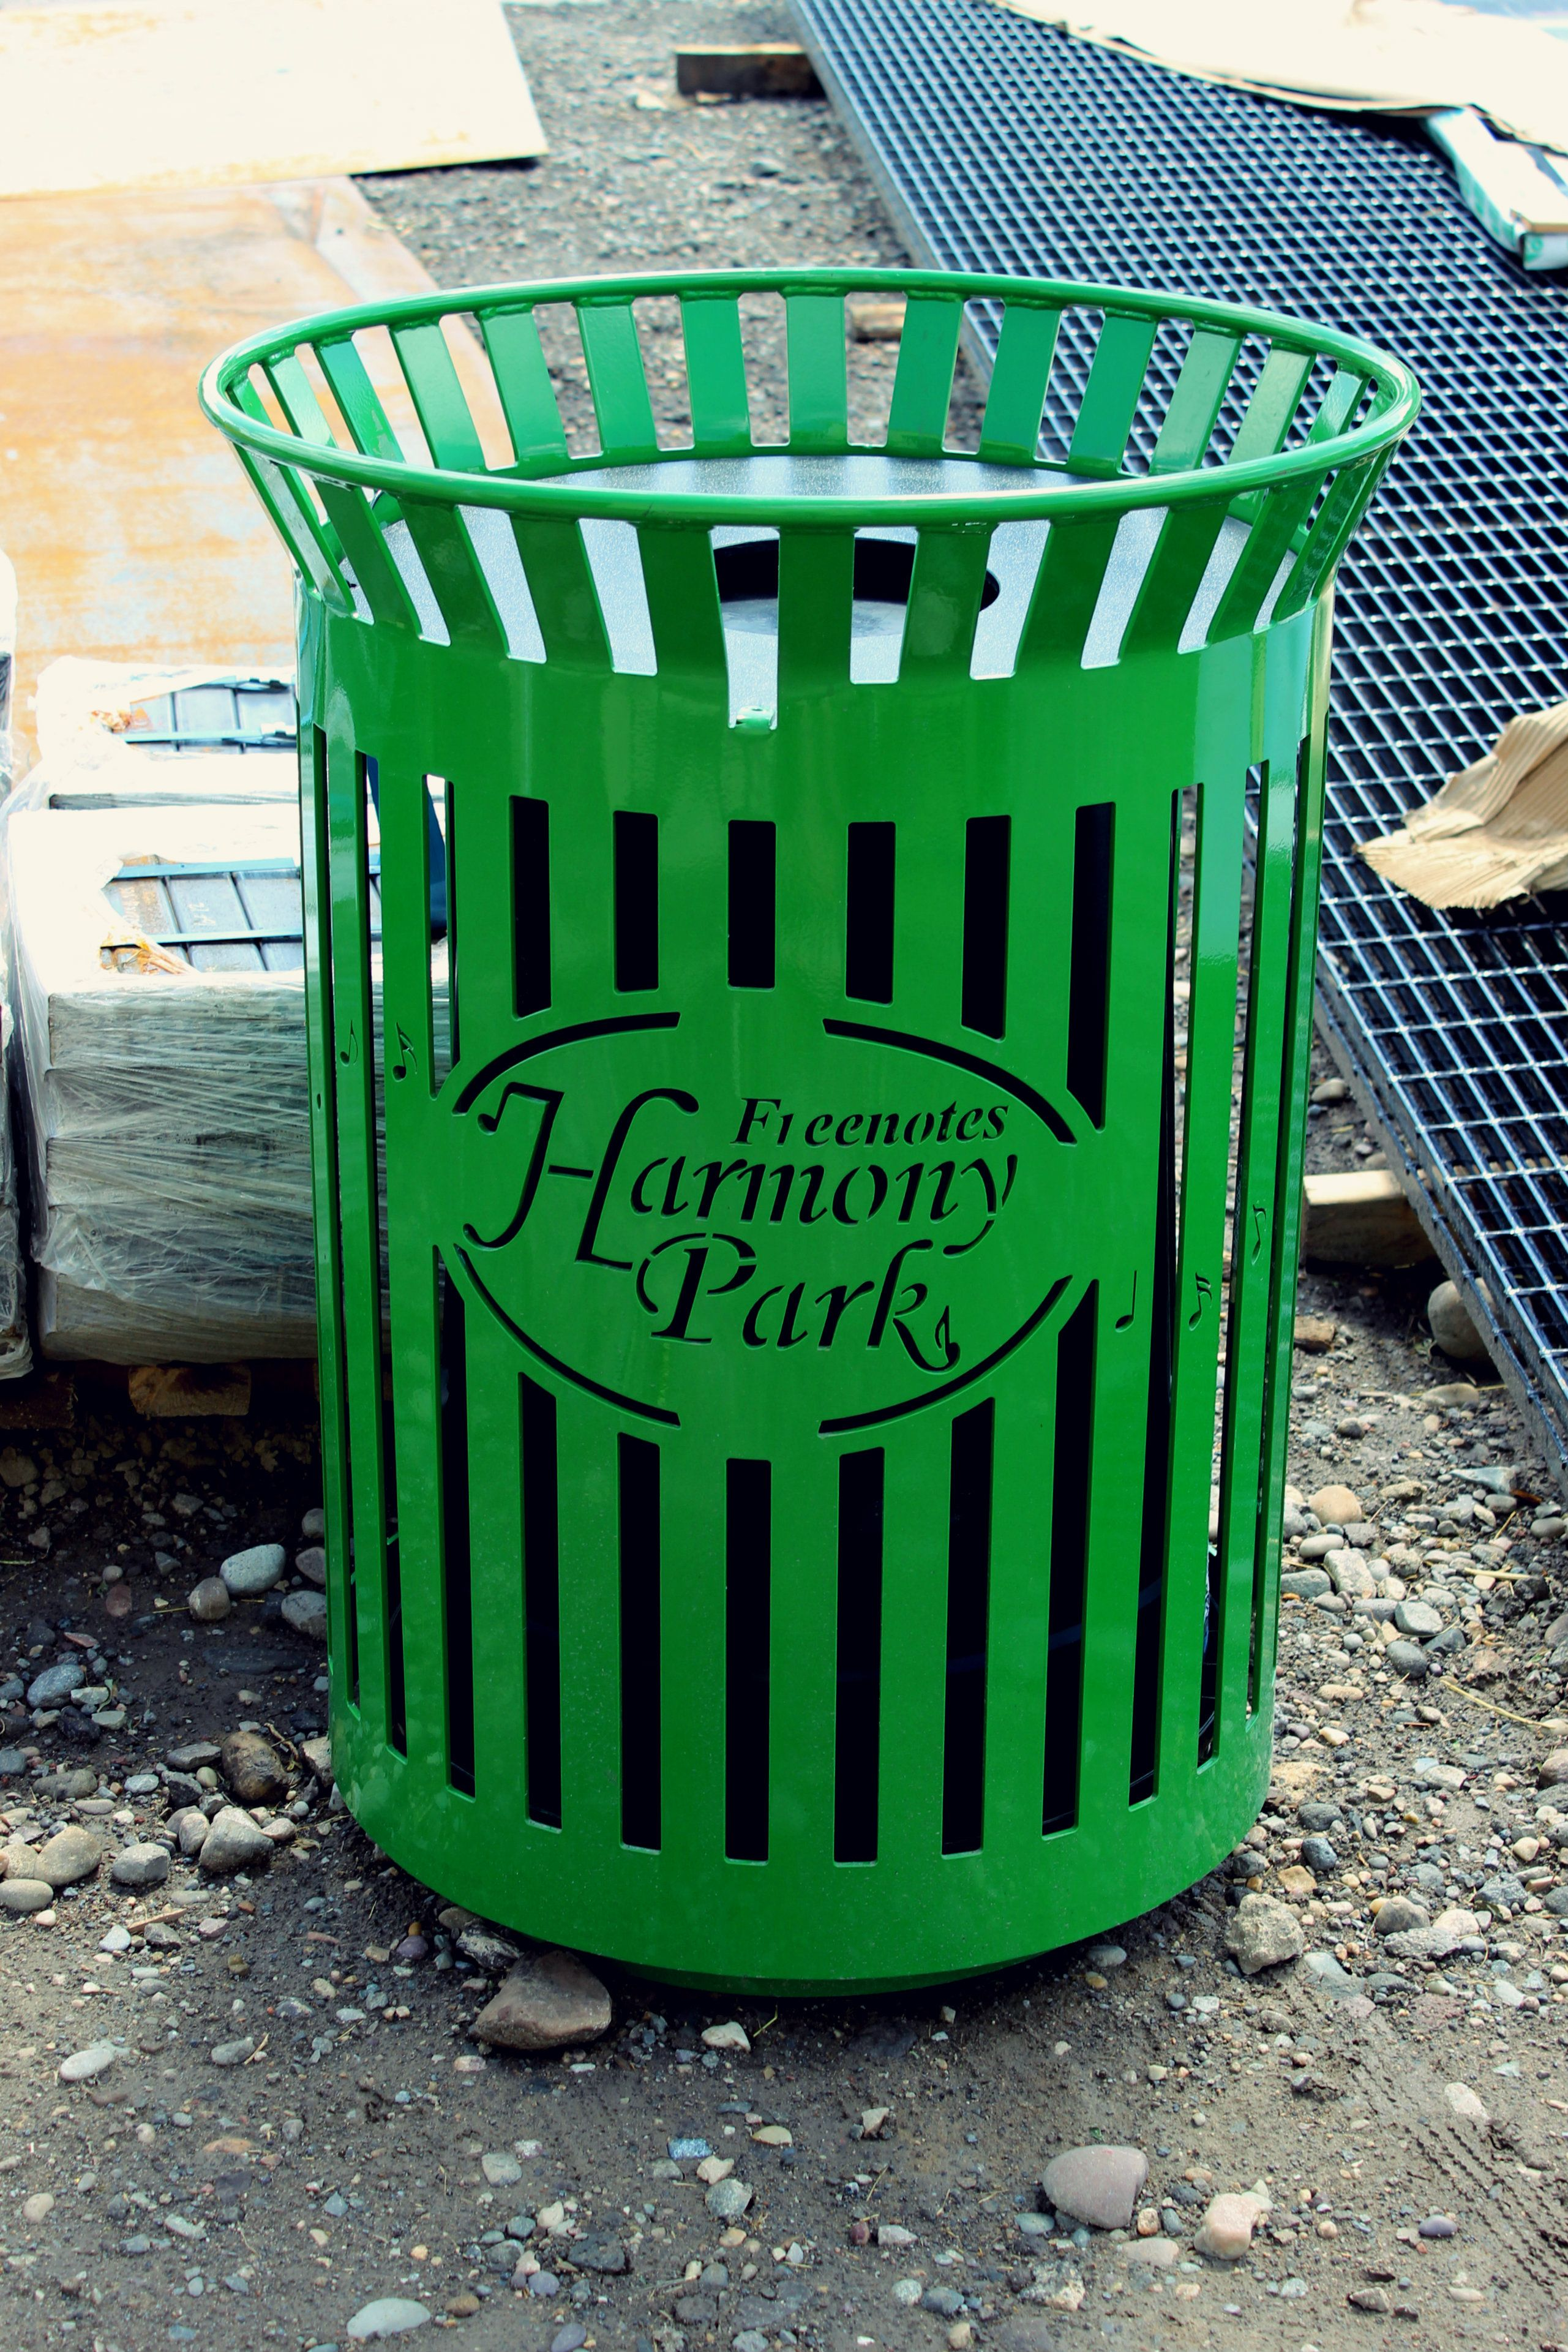 Our trash receptacles are the best on the market. Their sleek and professional look is complimented by a powder coating color of the buyer's choice. This product is perfect for your home, business, or community. Check out our line of trash receptacles today! http://www.premiersitefurniture.com/